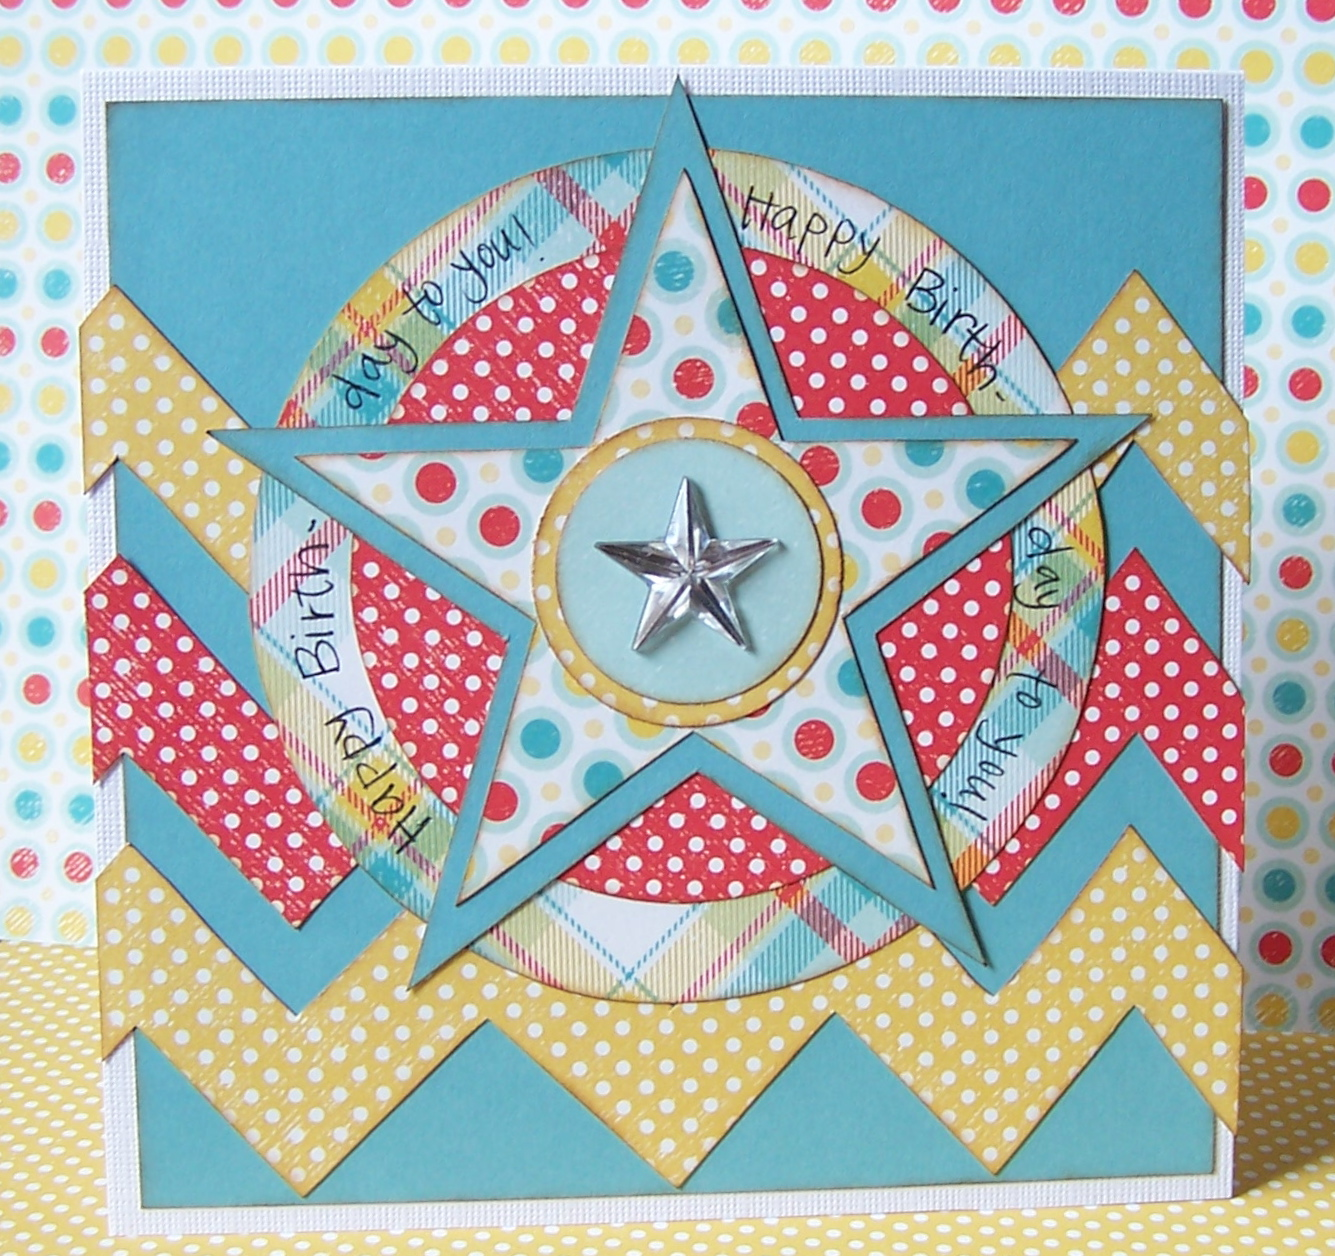 Homemade Birthday Cards for boys – Pictures of Homemade Birthday Cards